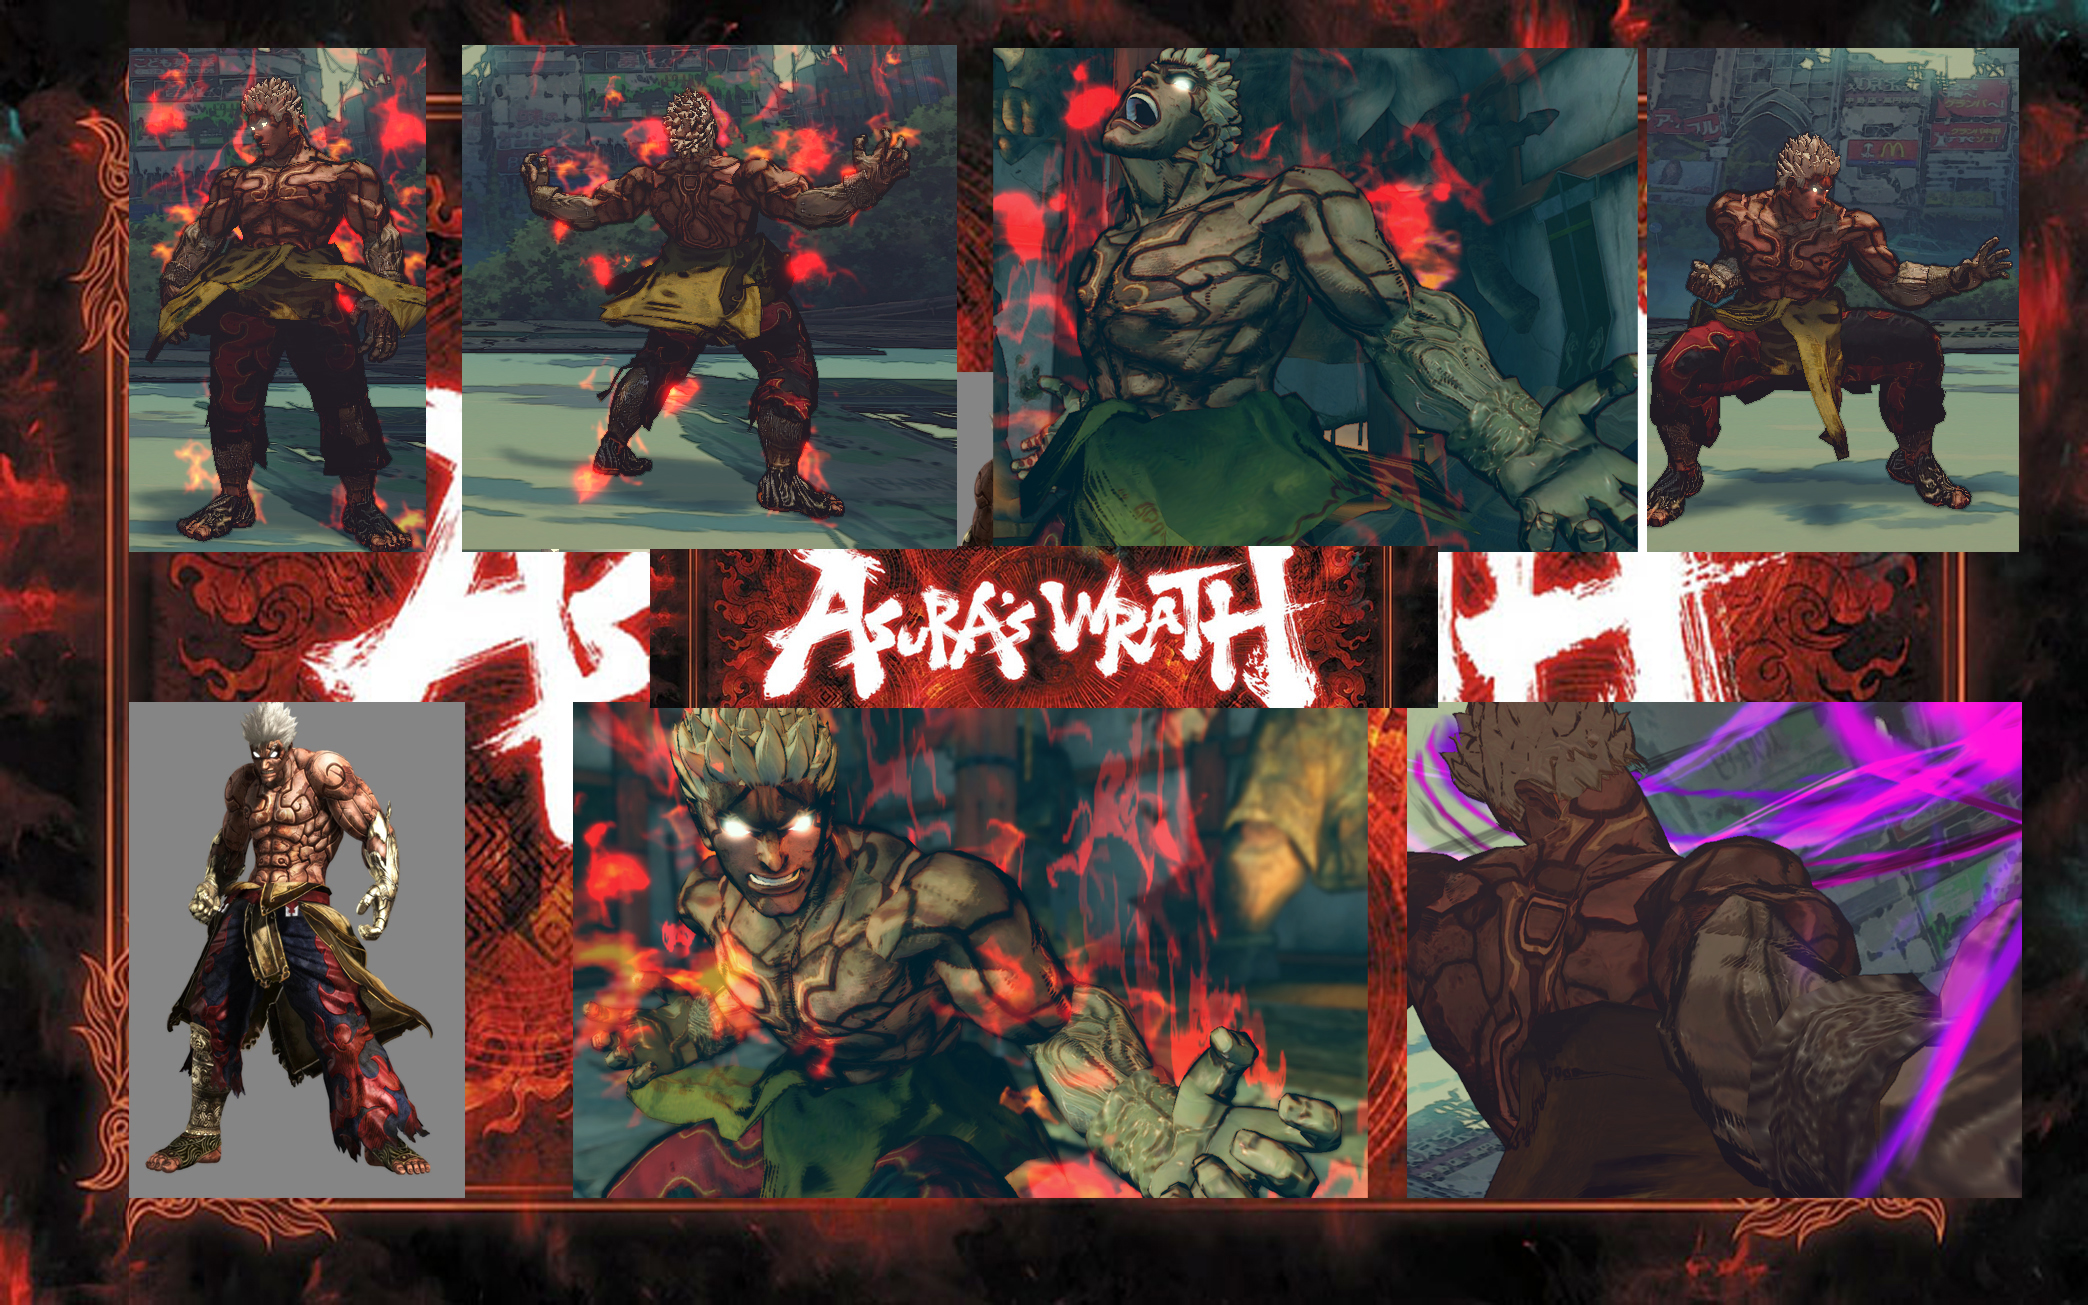 Evil Ryu Asura's wrath vol 2 (OUTDATED) by monkeygigabuster